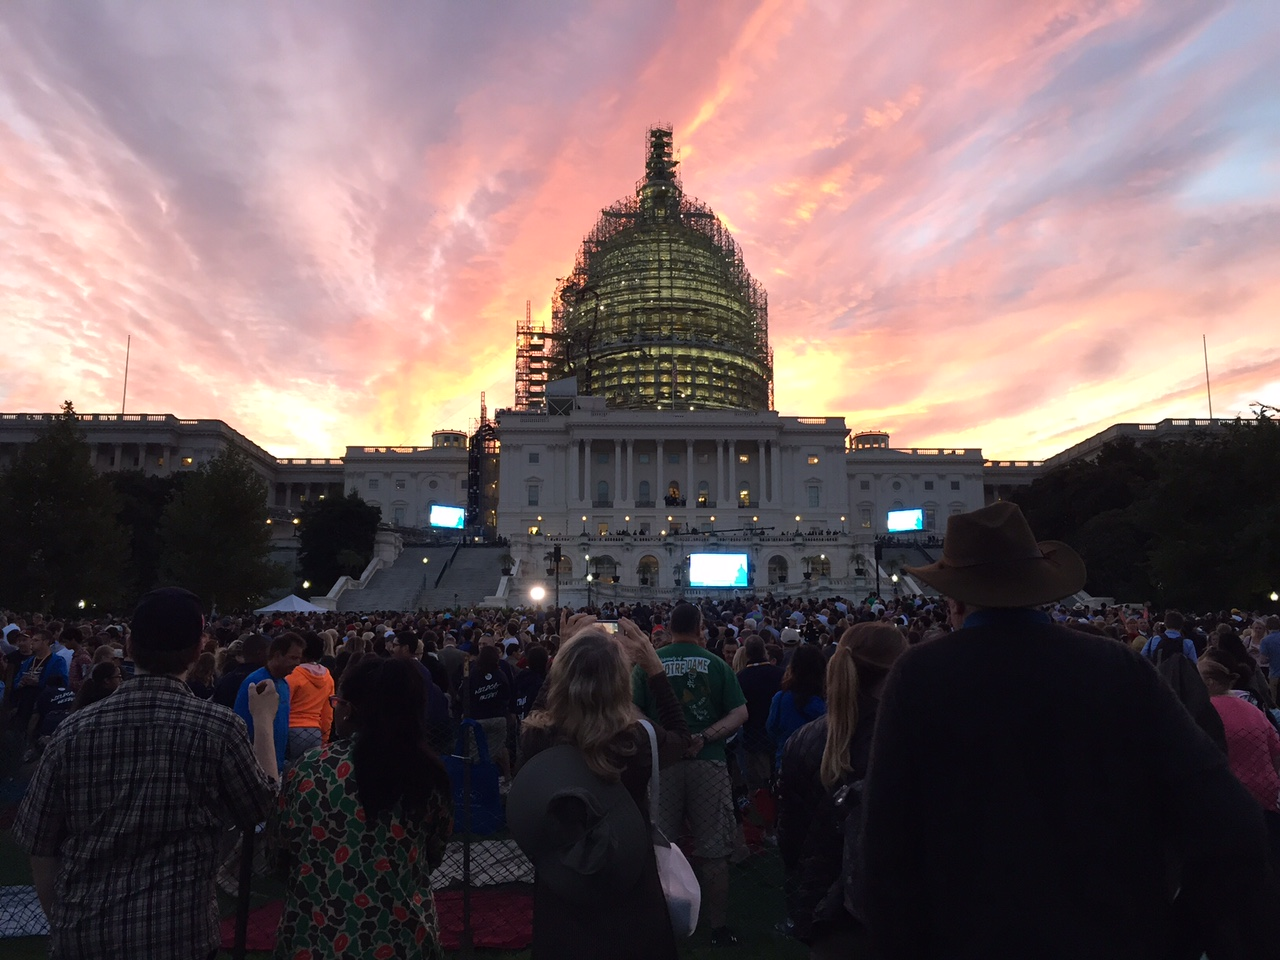 Visitors file in to the west lawn of the U.S. Capitol building to see Pope Francis on Thursday, Sept. 24, 2015. (WTOP/Dennis Foley)